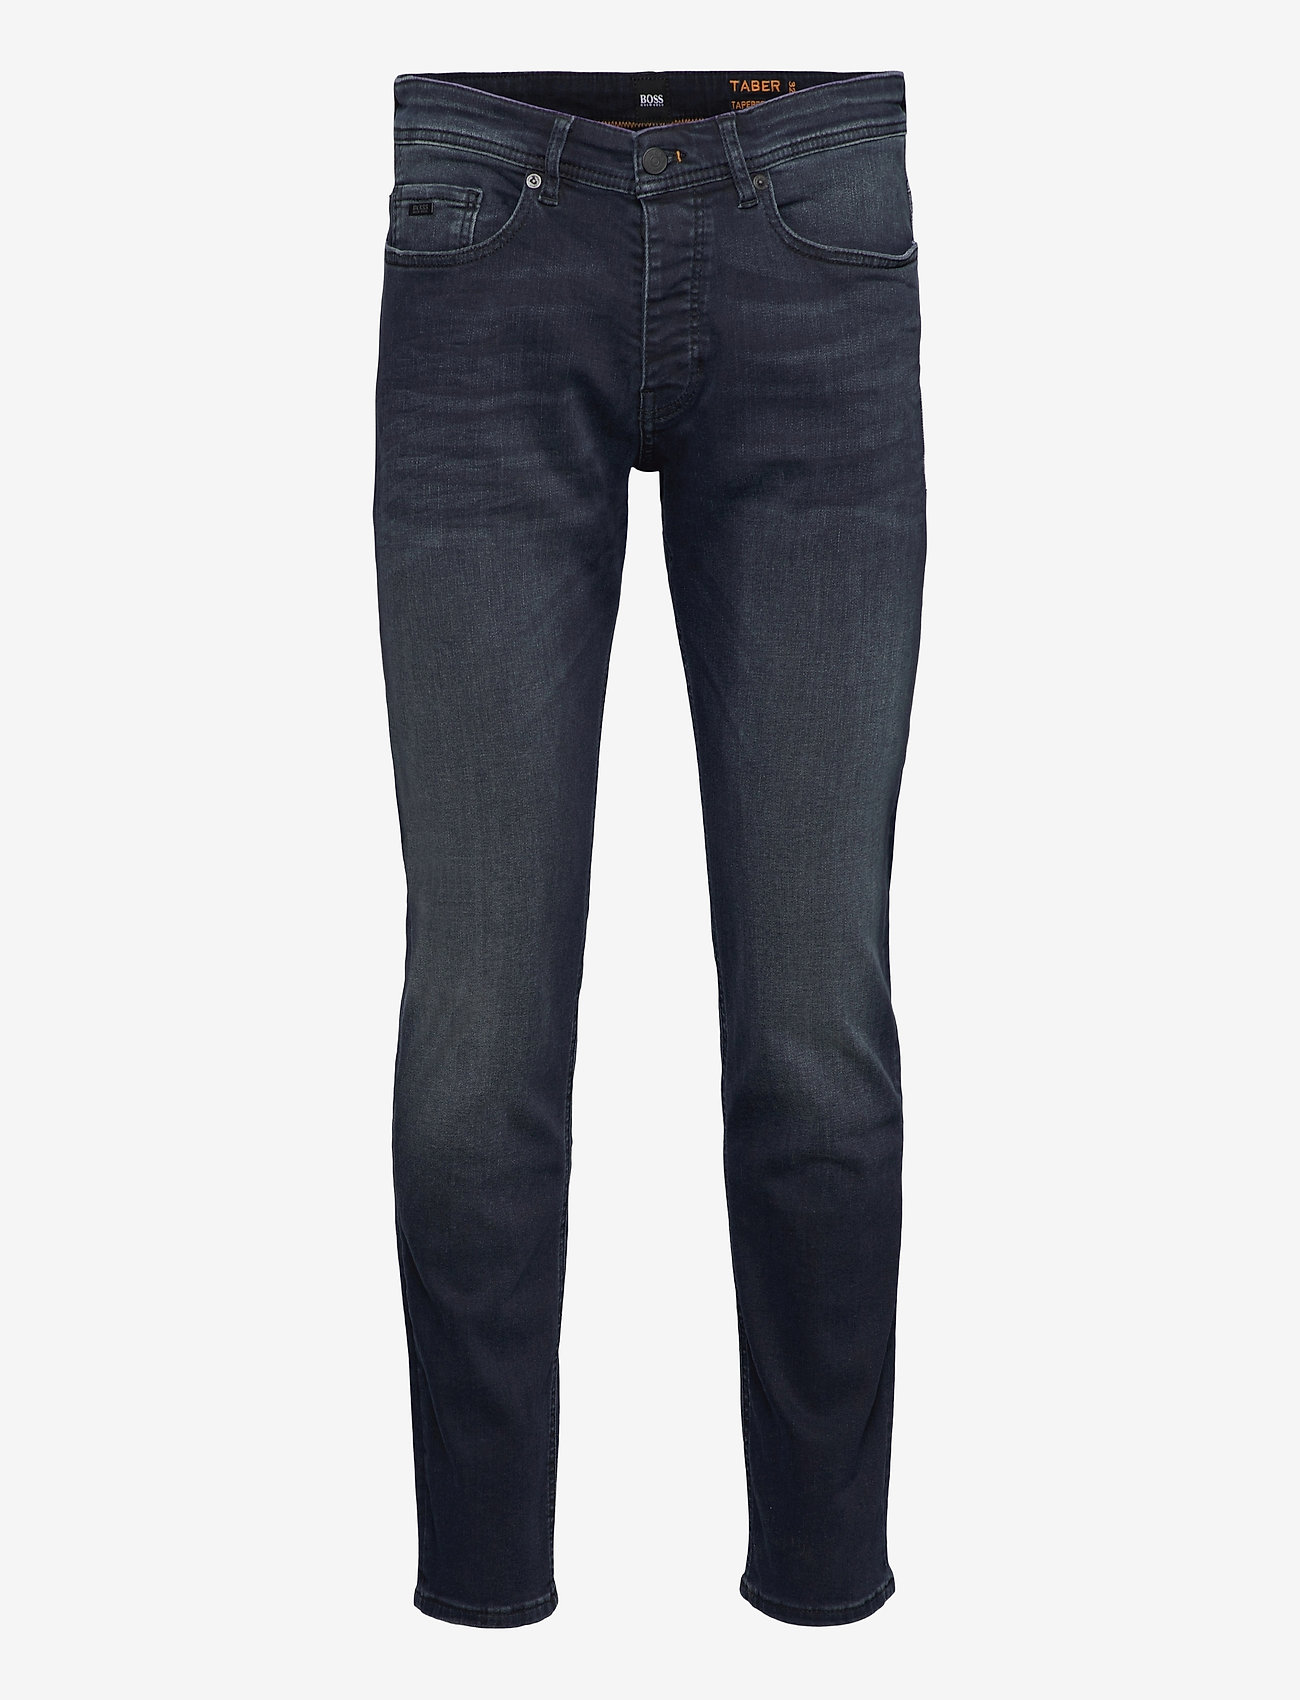 BOSS - Taber BC-P - tapered jeans - navy - 0